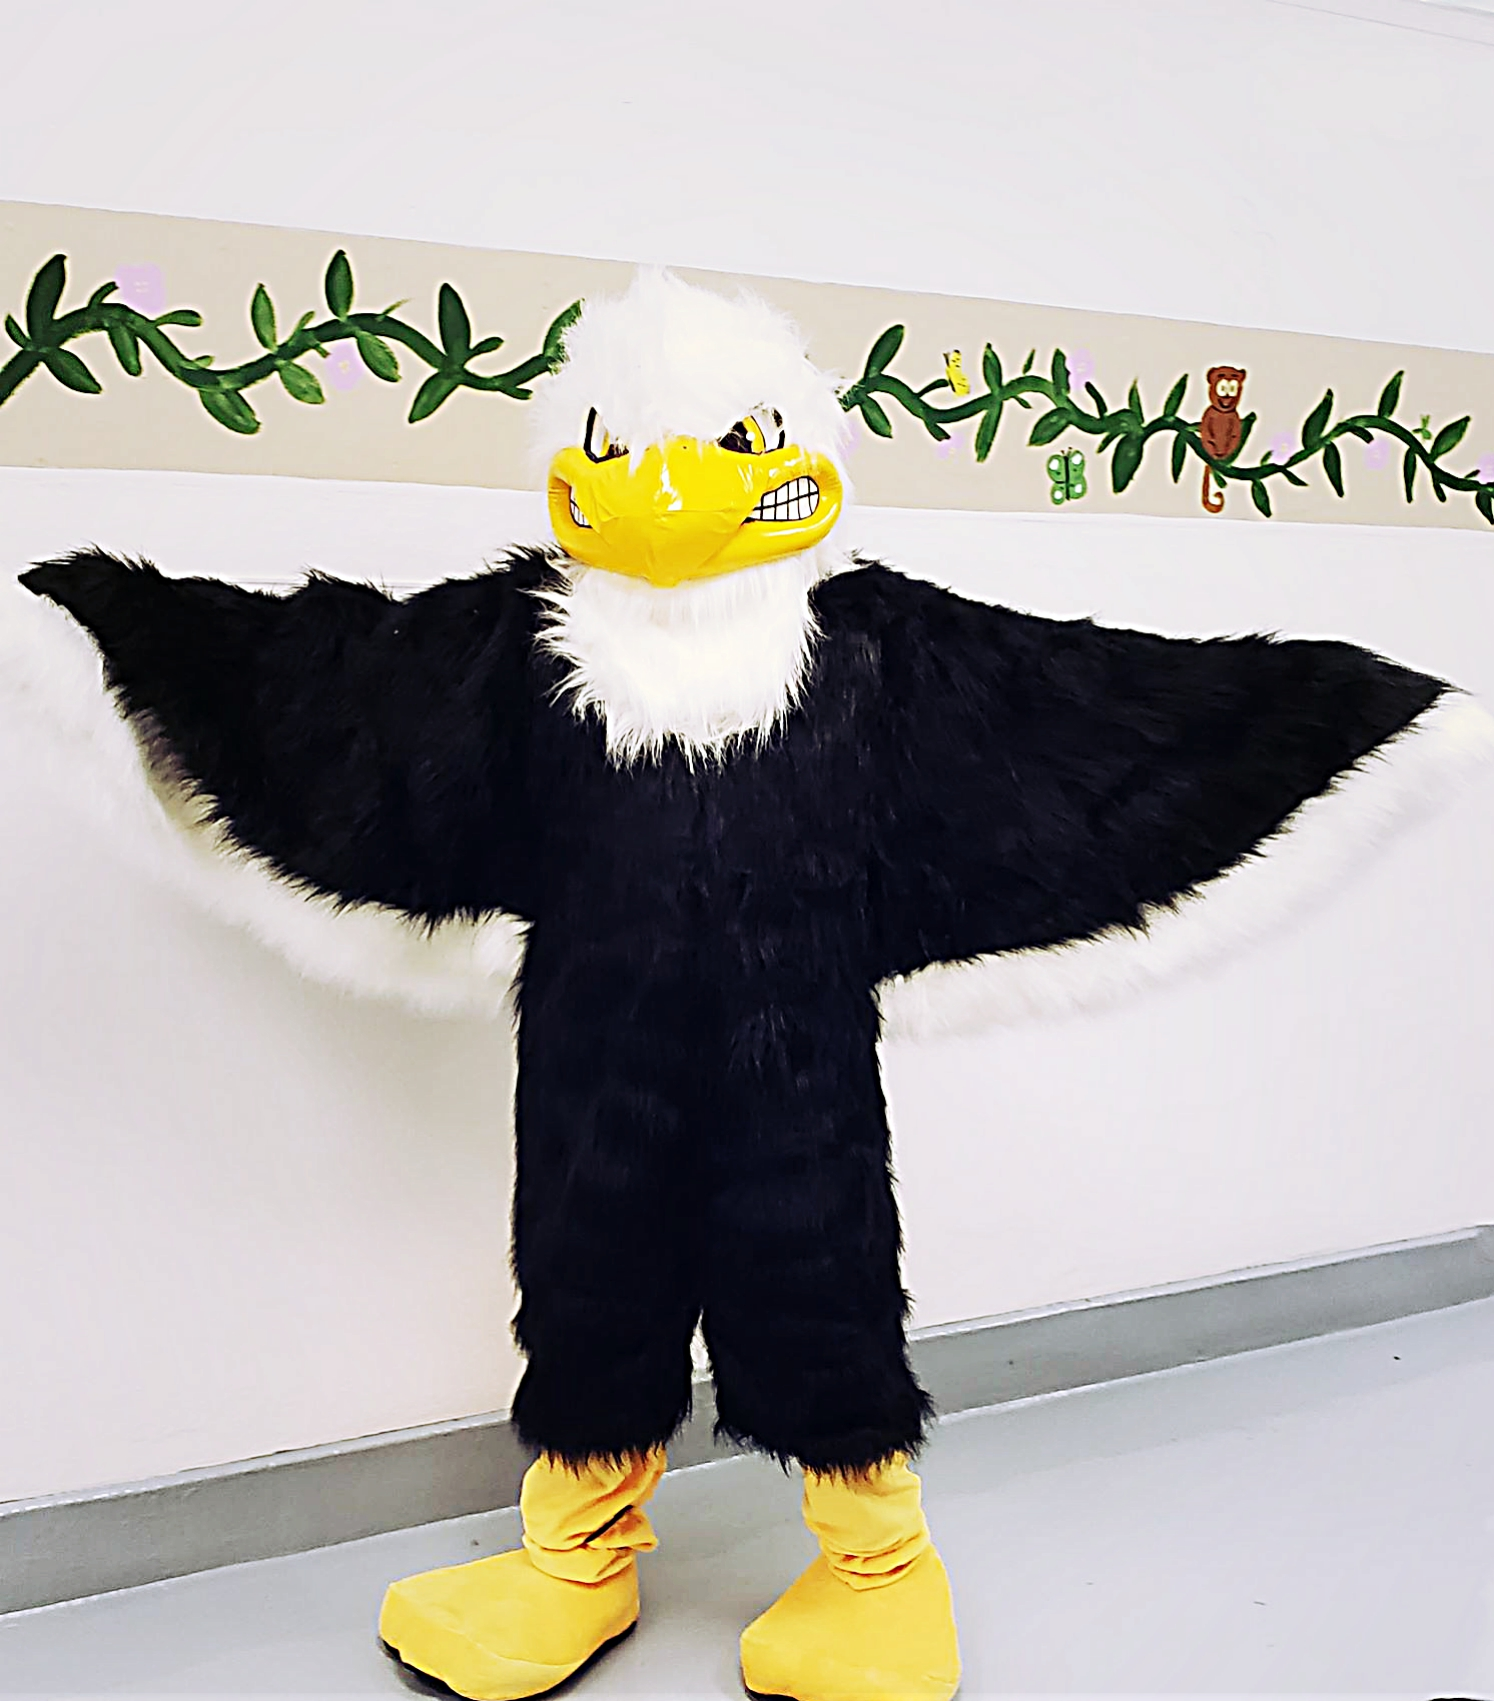 Introducing the newest member of the Enon faculty, Eagle Mac, our new mascot!!